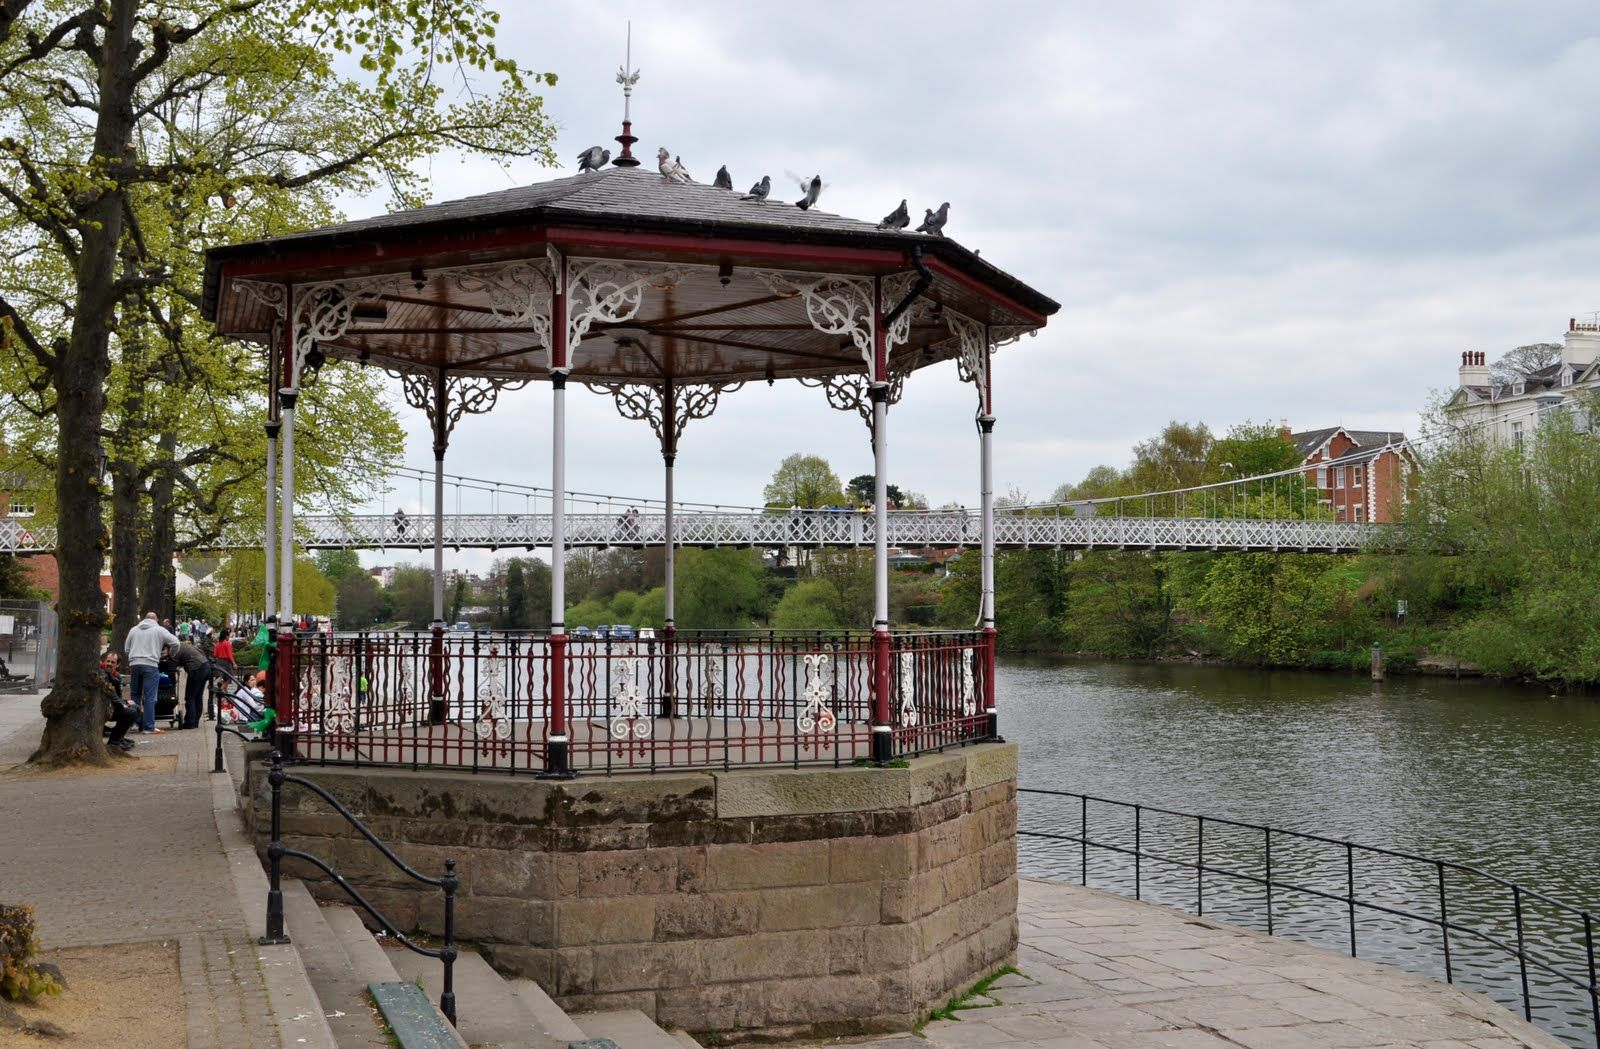 Victorian Band Stand by the River Dee